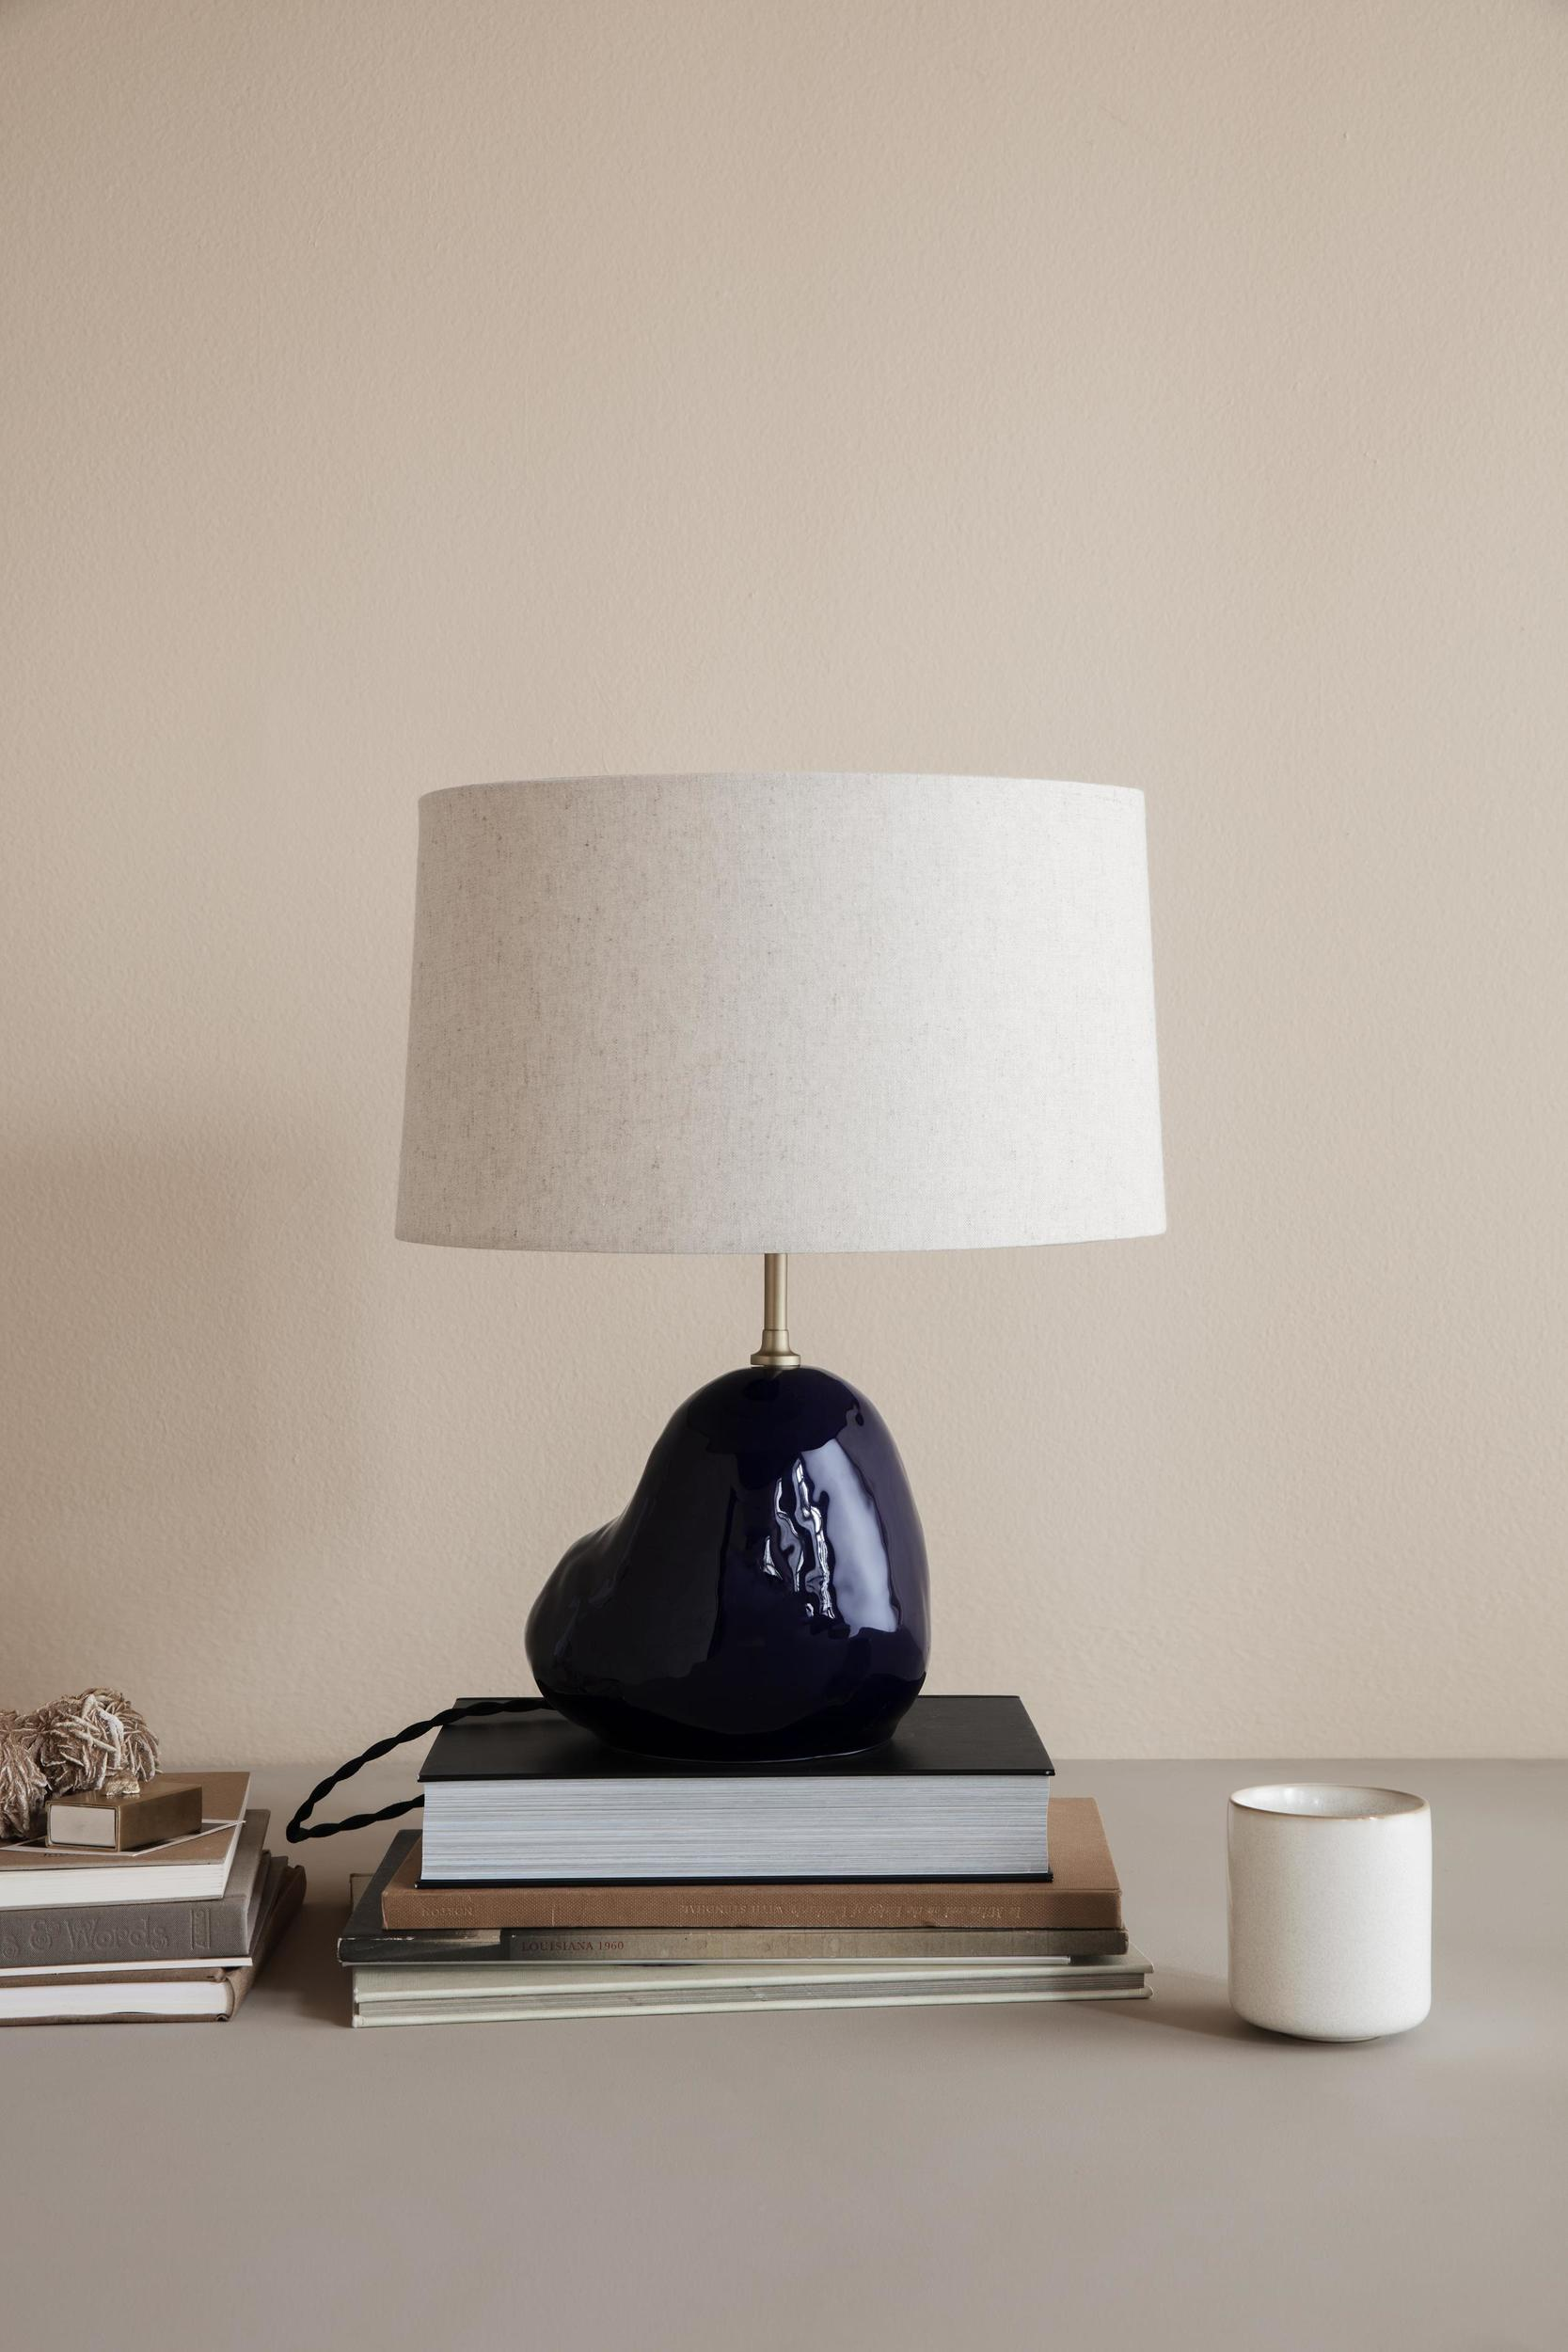 Hebe Lamp Small Ferm Living 100325719 Formadore